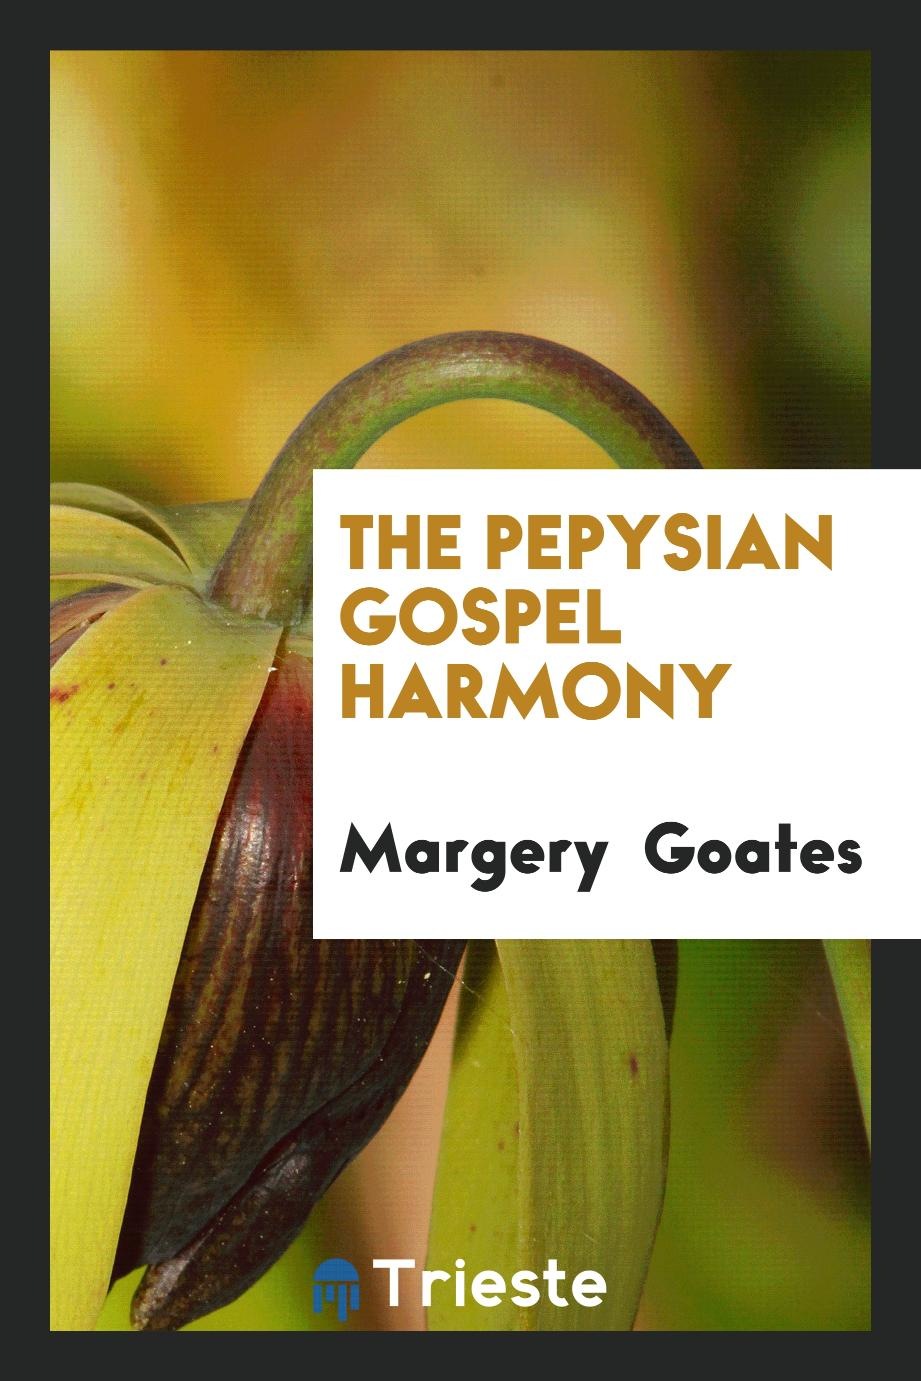 The Pepysian Gospel Harmony